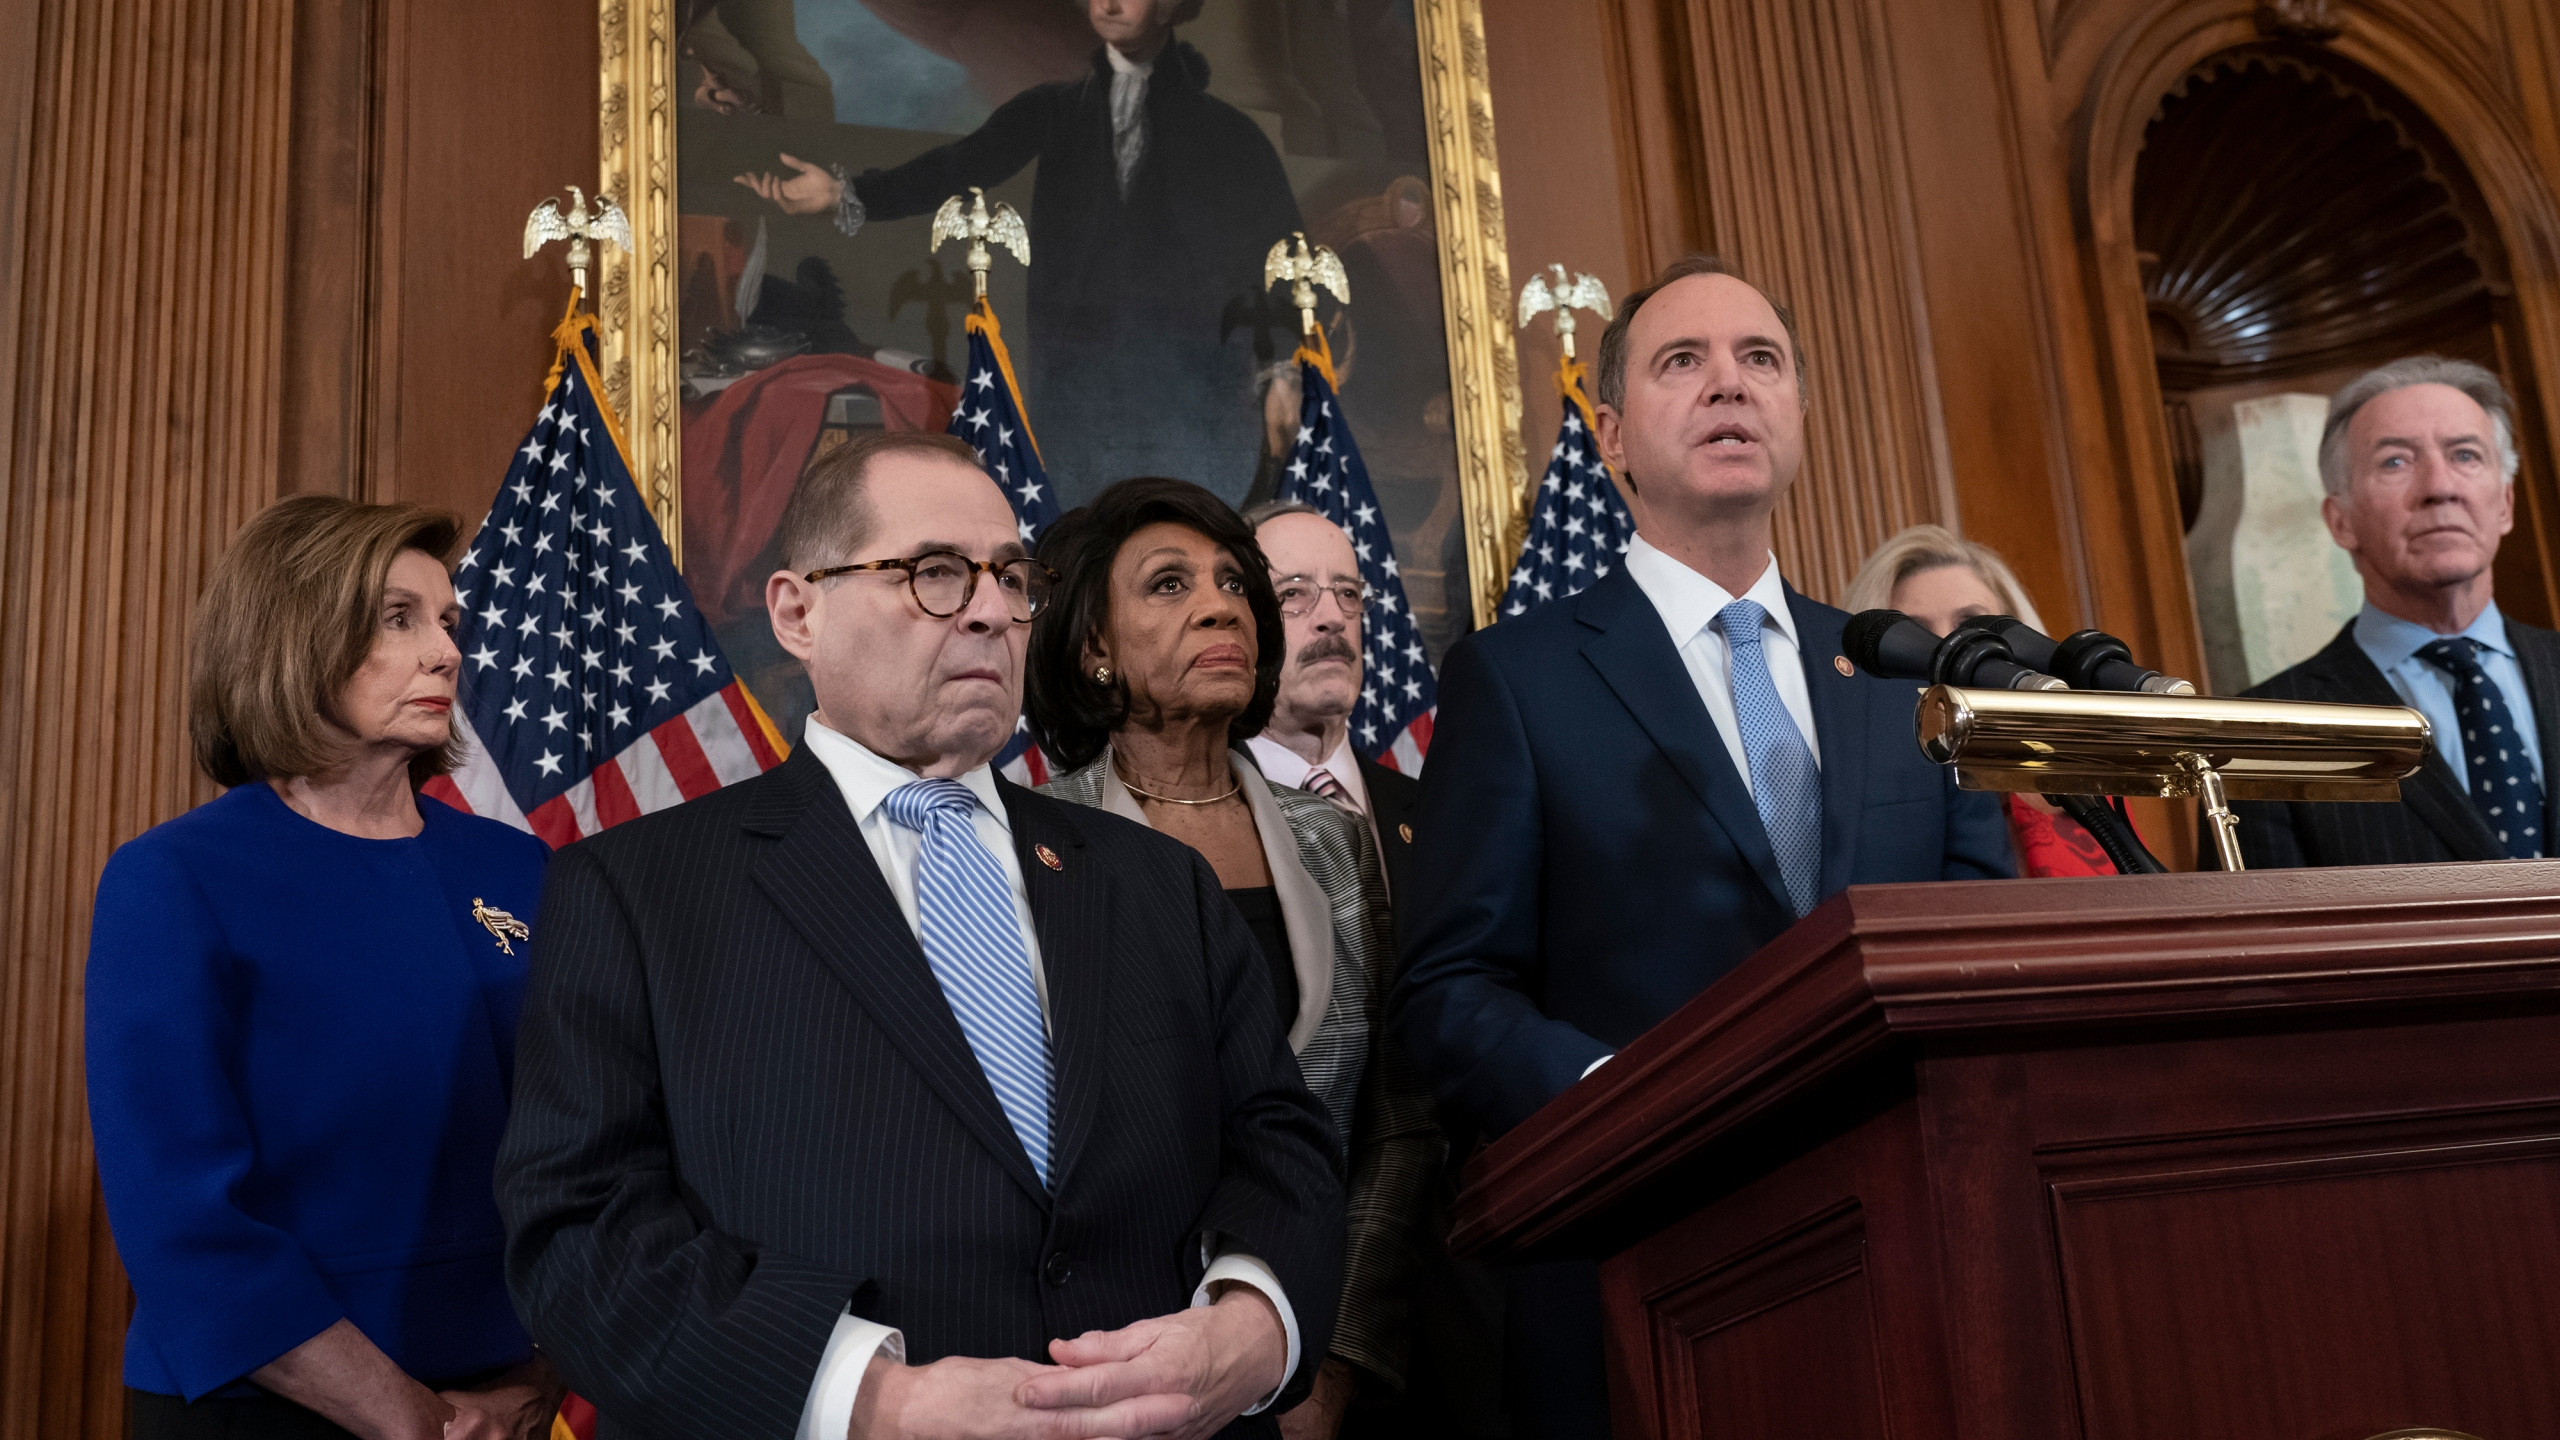 Nancy Pelosi, Jerrold Nadler, Adam Schiff, Eliot Engel, Maxine Waters, Richard Neal